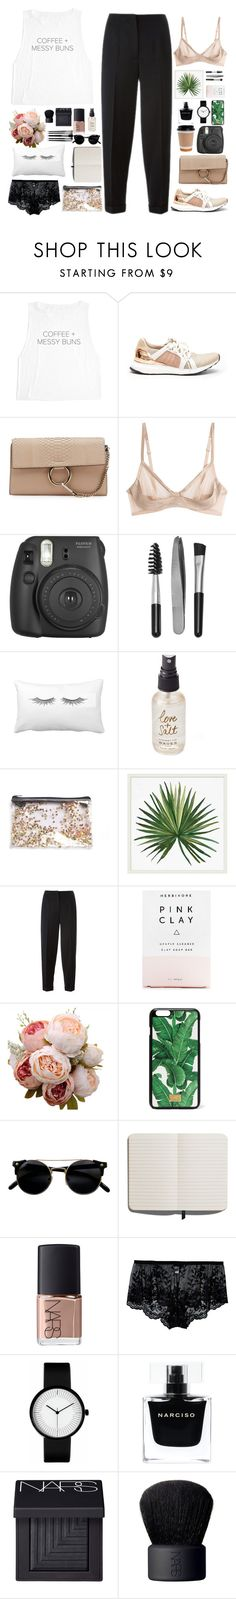 """""""Untitled #2828"""" by wtf-towear ❤ liked on Polyvore featuring adidas, Chloé, La Perla, Fujifilm, Sephora Collection, Olivine, Pottery Barn, Alexander McQueen, Herbivore and Dolce&Gabbana"""